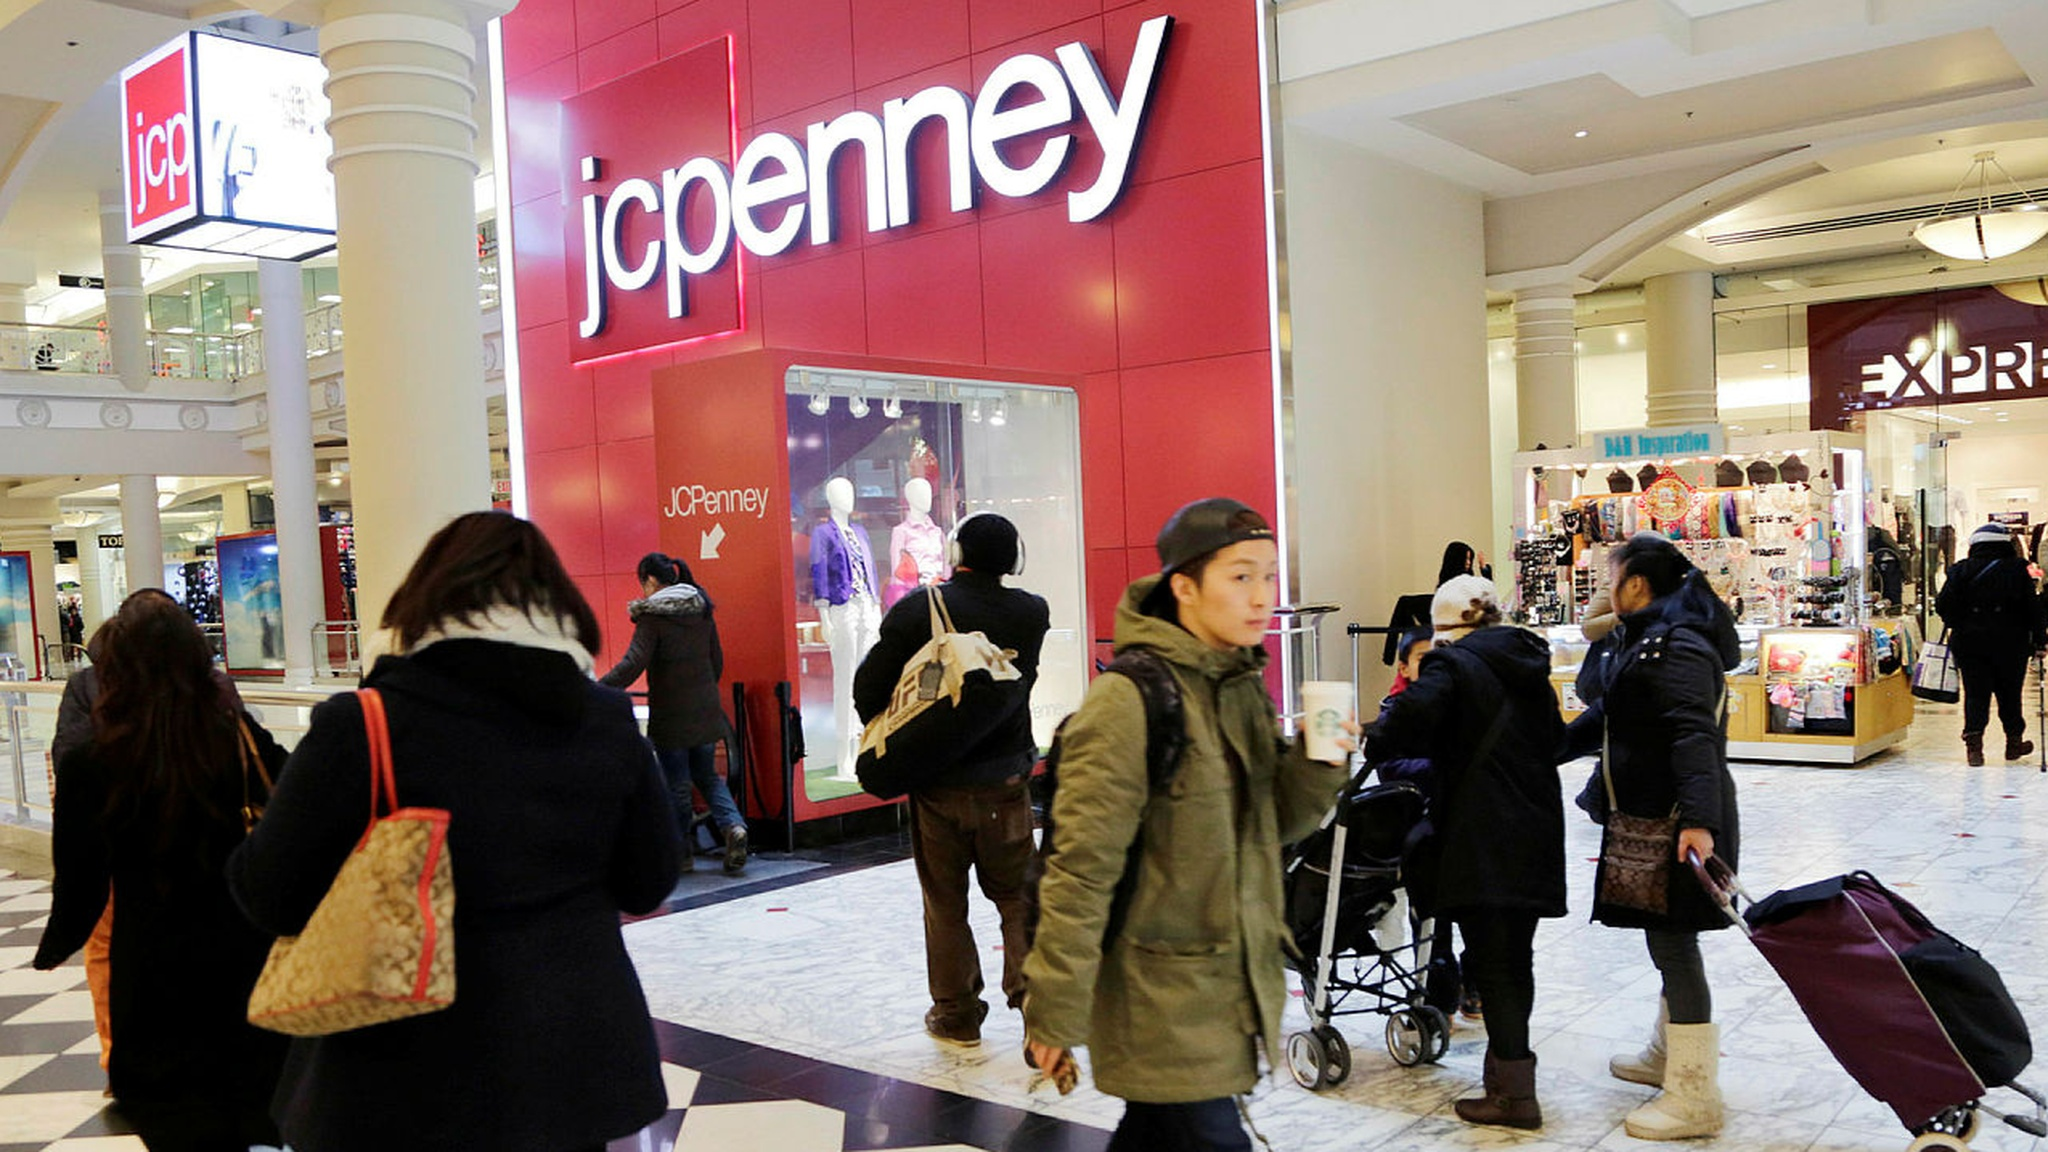 78e8d7ca8398 JCPenney shares plunge to record low as it cuts full-year outlook. US  department store chain reports disappointing sales ...